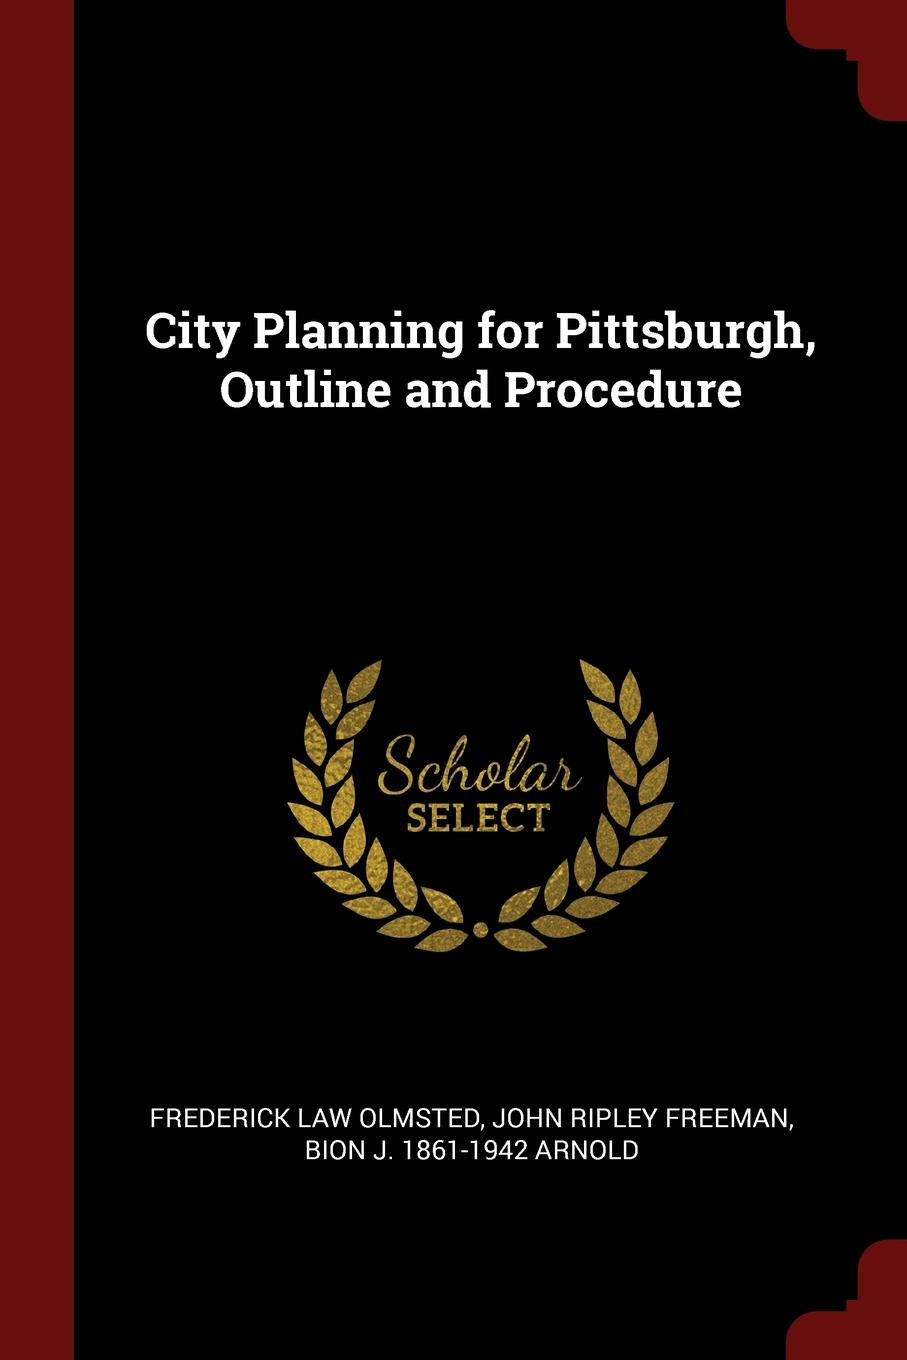 Frederick Law Olmsted, John Ripley Freeman, Bion J. 1861-1942 Arnold City Planning for Pittsburgh, Outline and Procedure